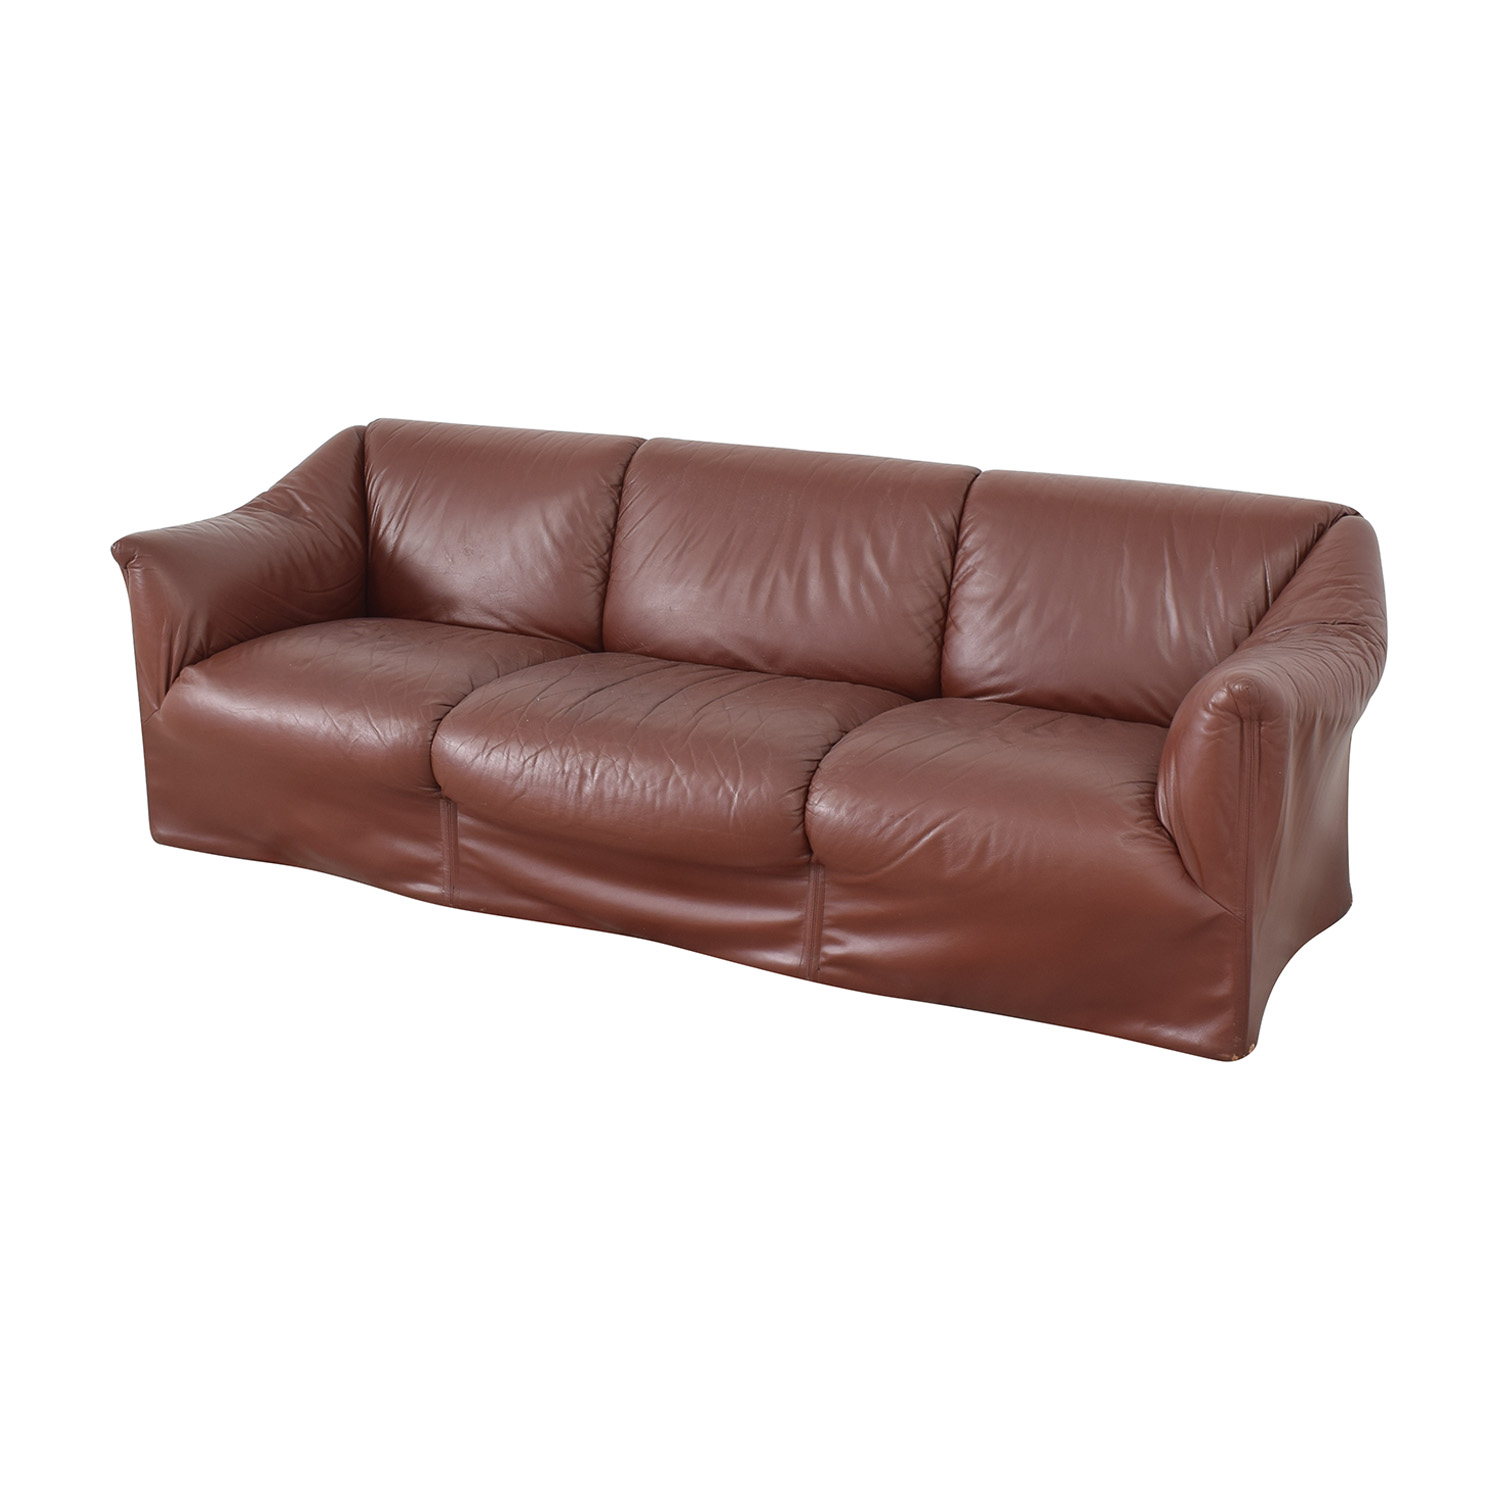 Cassina Mario Bellini for Cassina Tentazione Sofa second hand